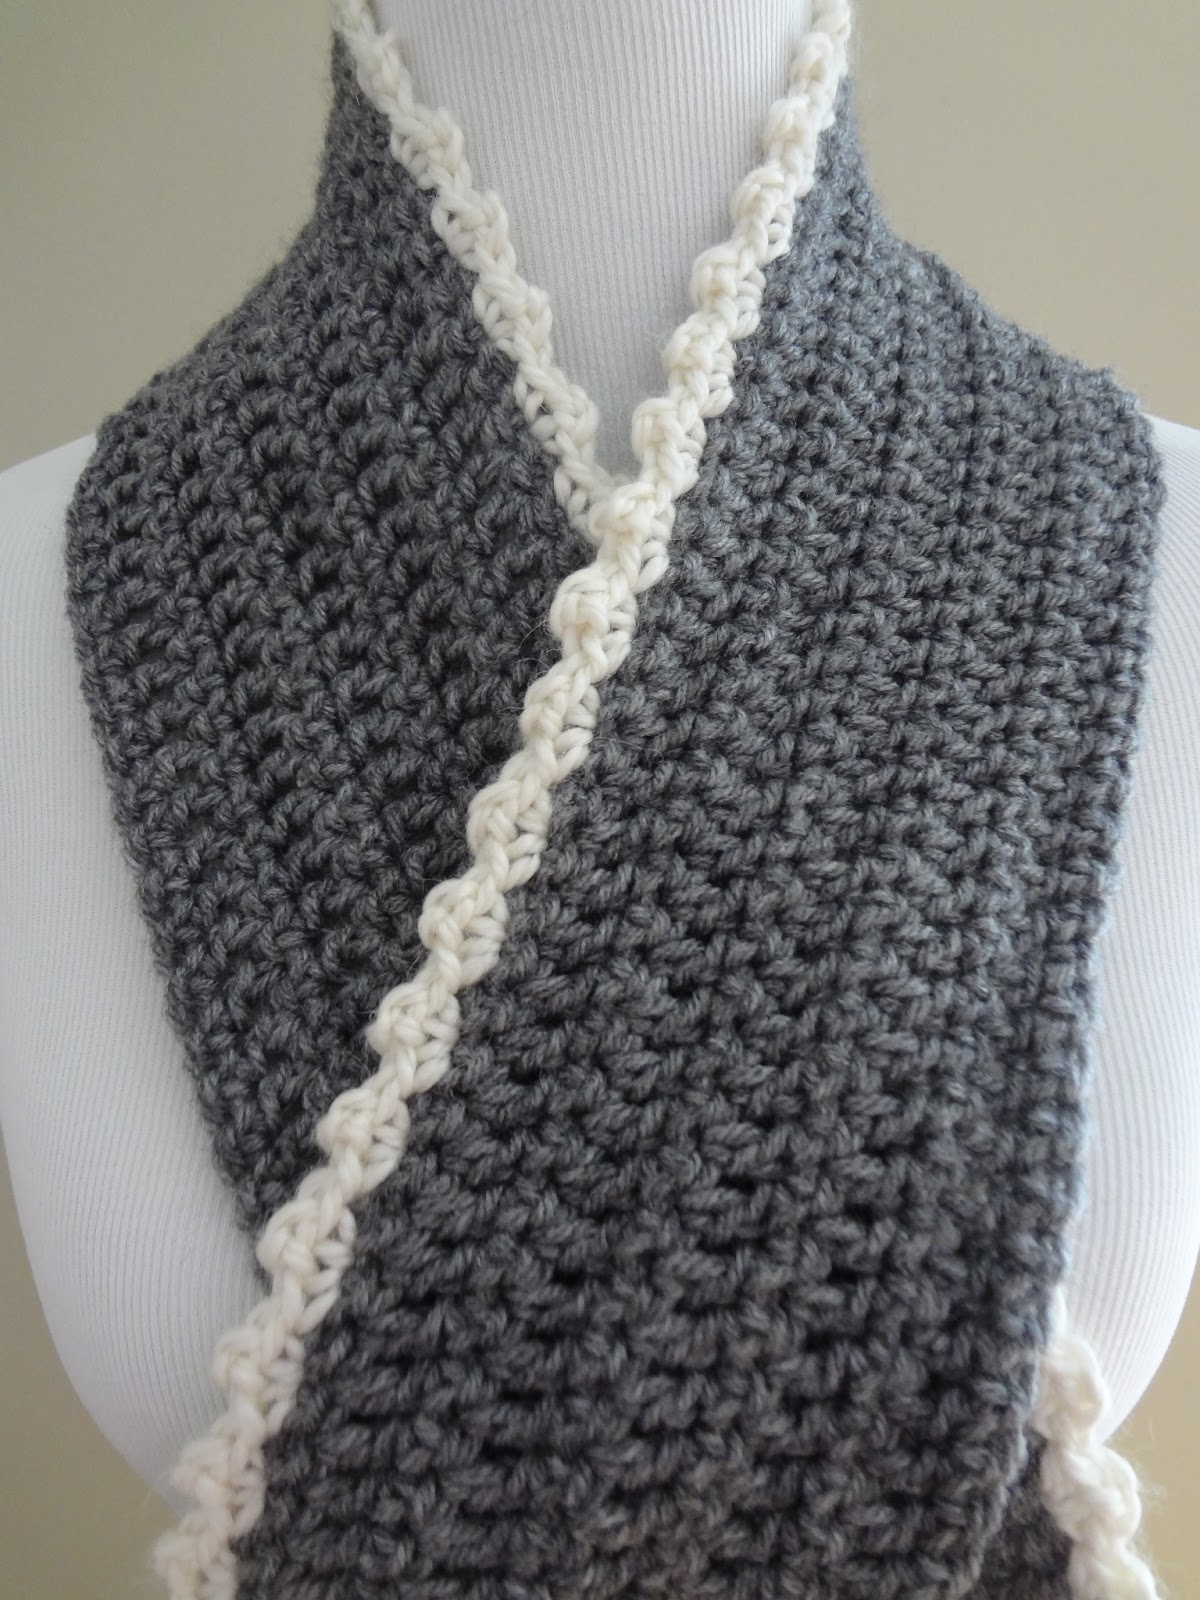 Free Crochet Patterns For Lightweight Scarves : Fiber Flux: Free Crochet Pattern...Ingrid Scarf